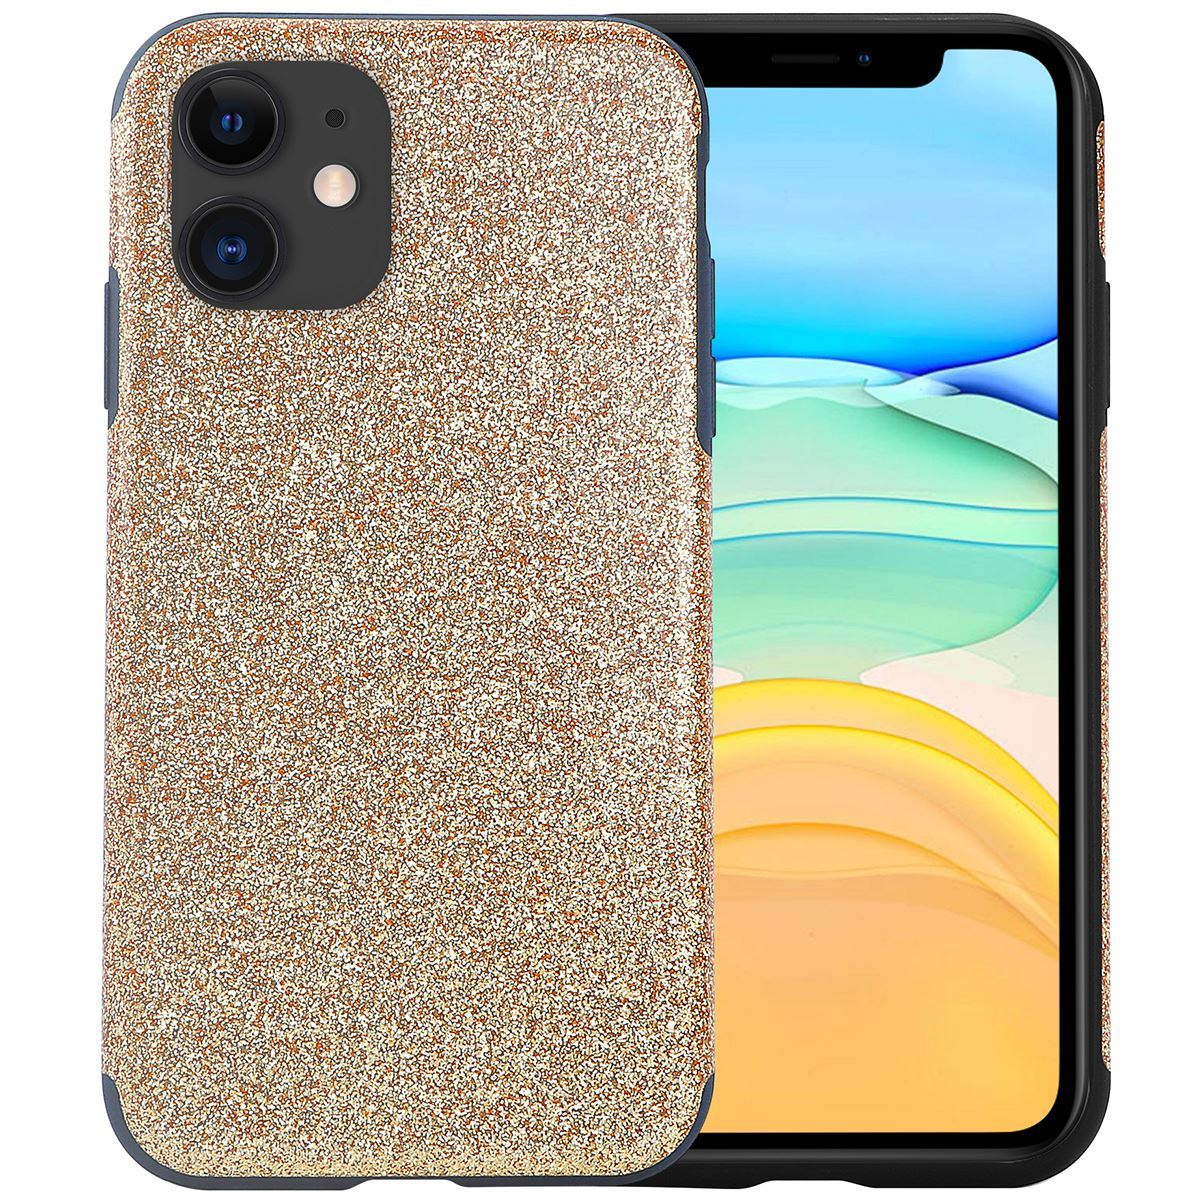 iPhone 11 Case Silicone Glitter Back Cover - Gold